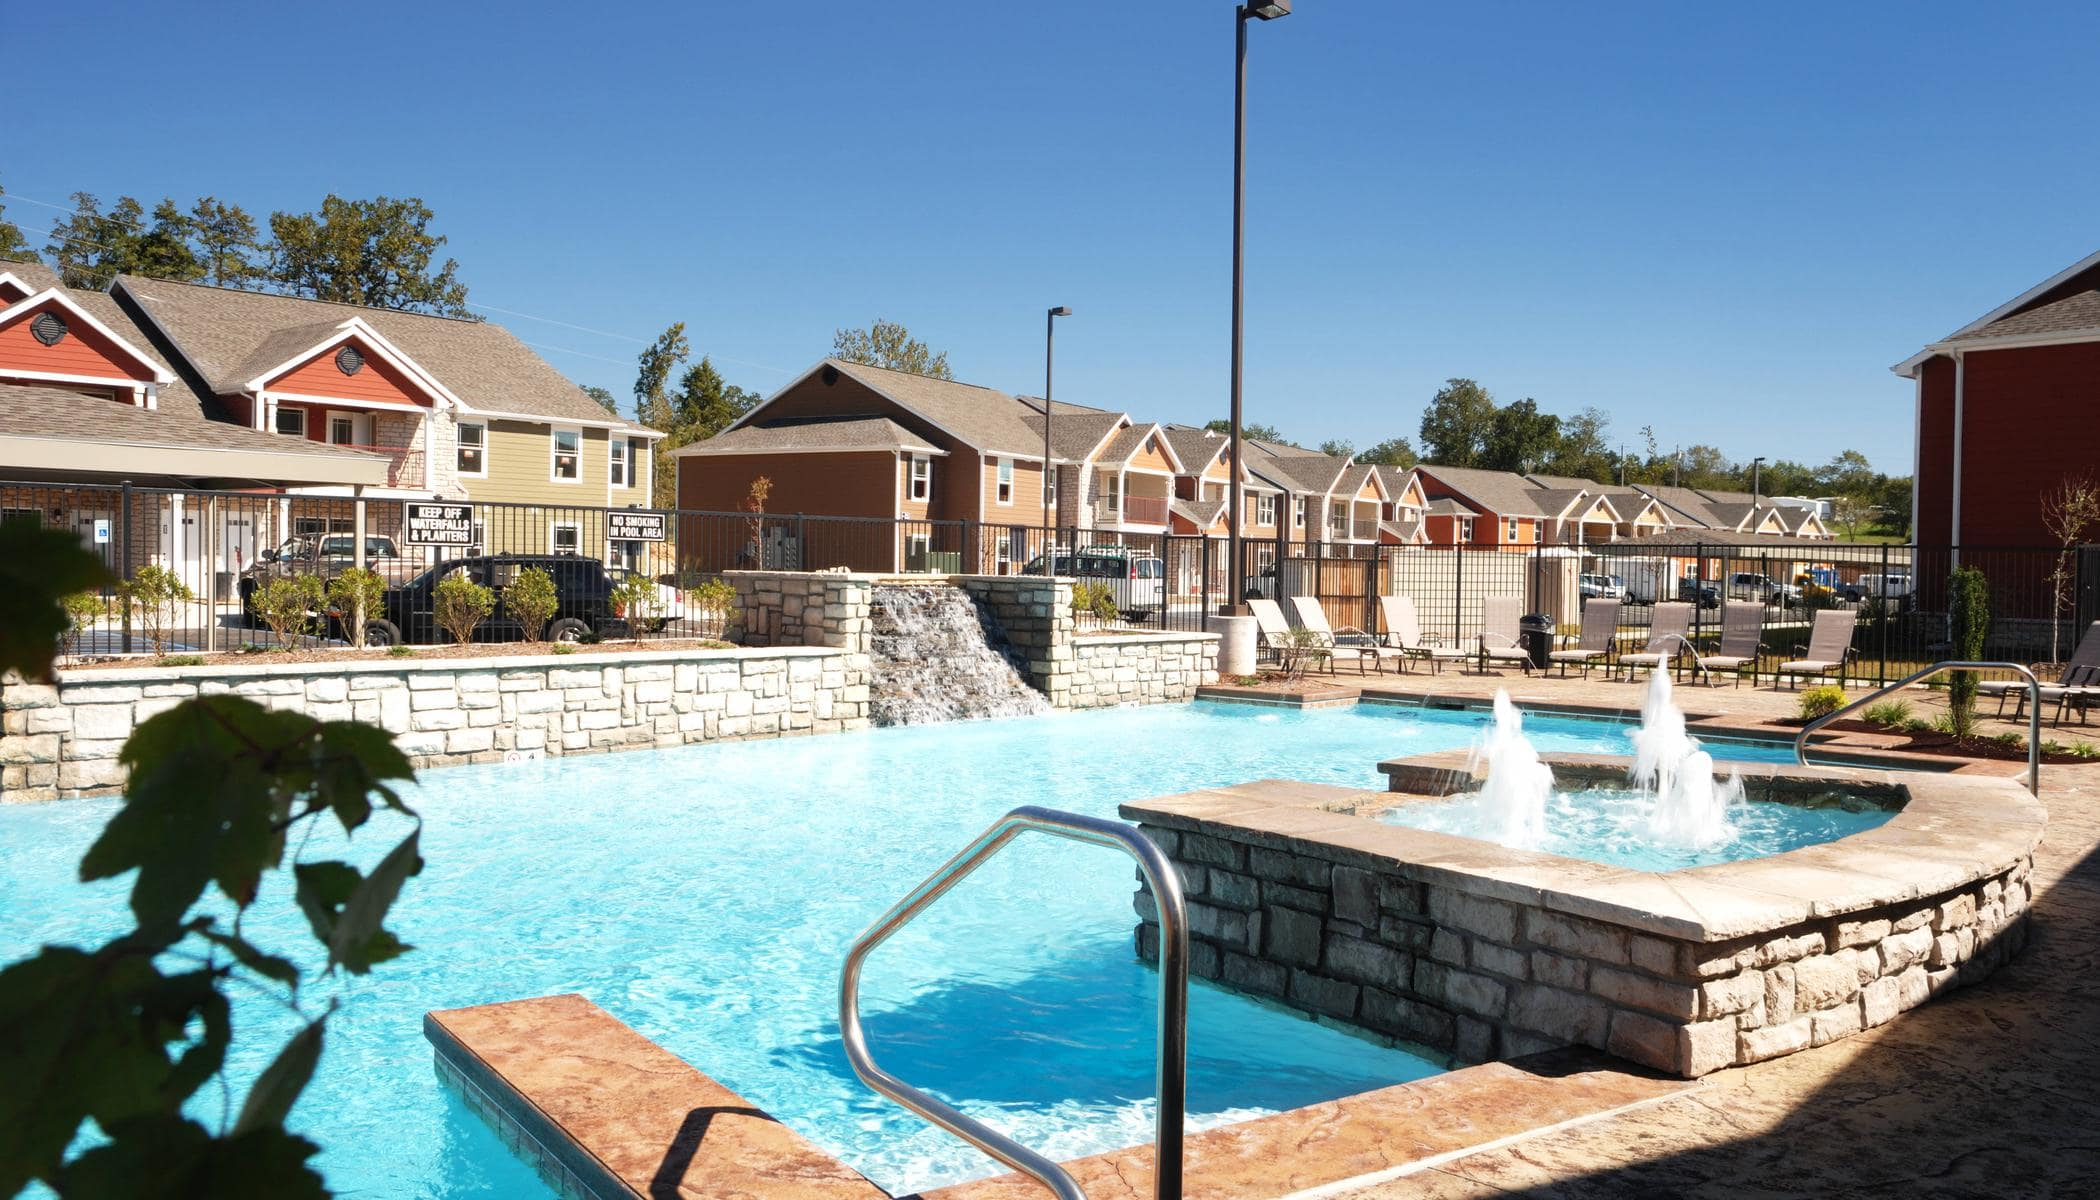 Beautiful swimming pool at apartments in Branson, MO